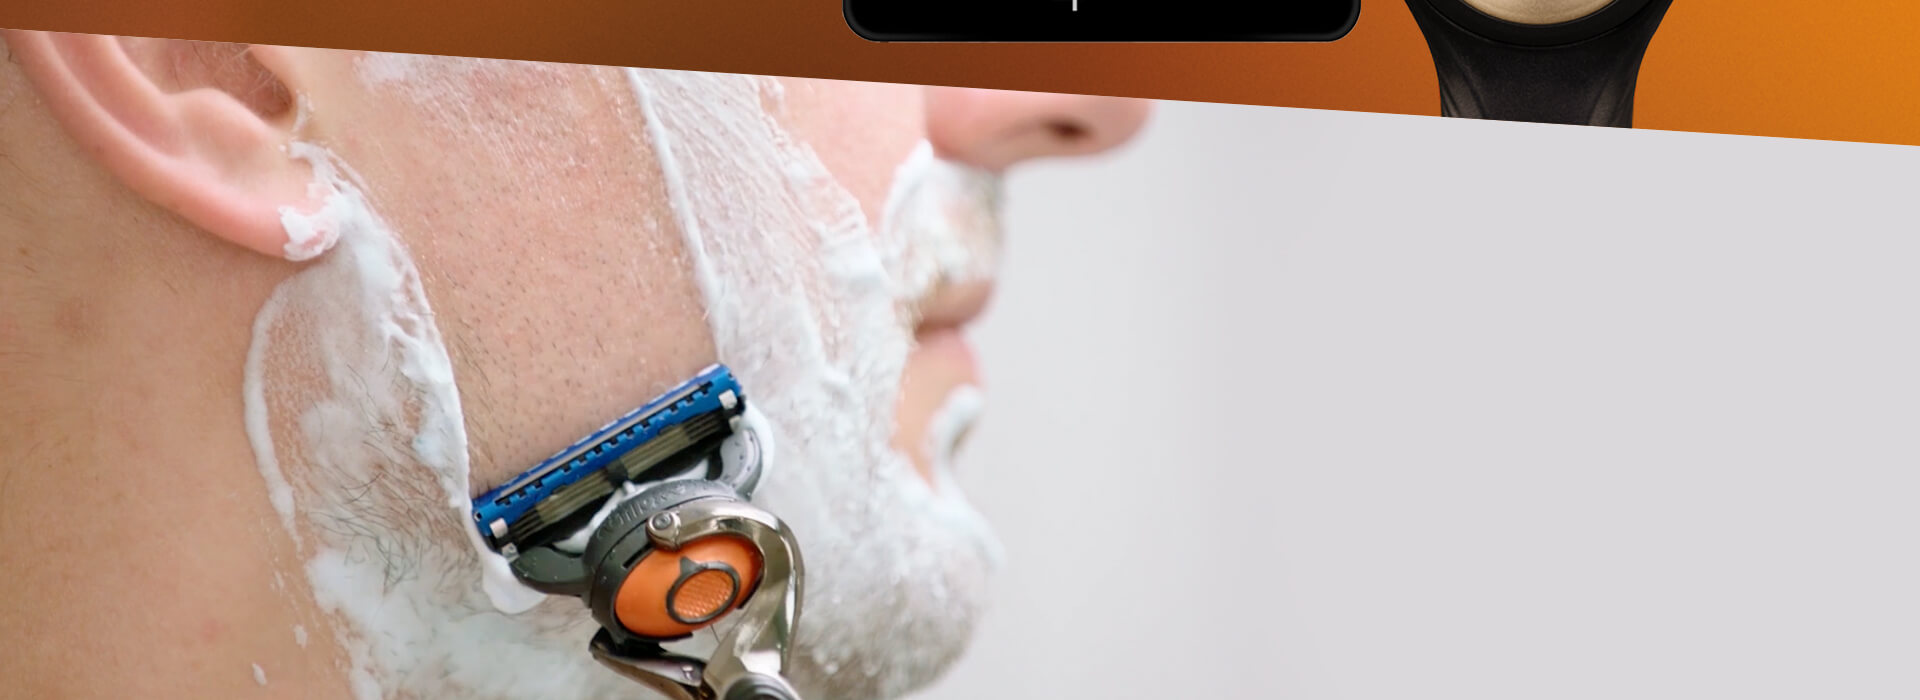 GIllette razor subscriptions - tailored to your shaving habits